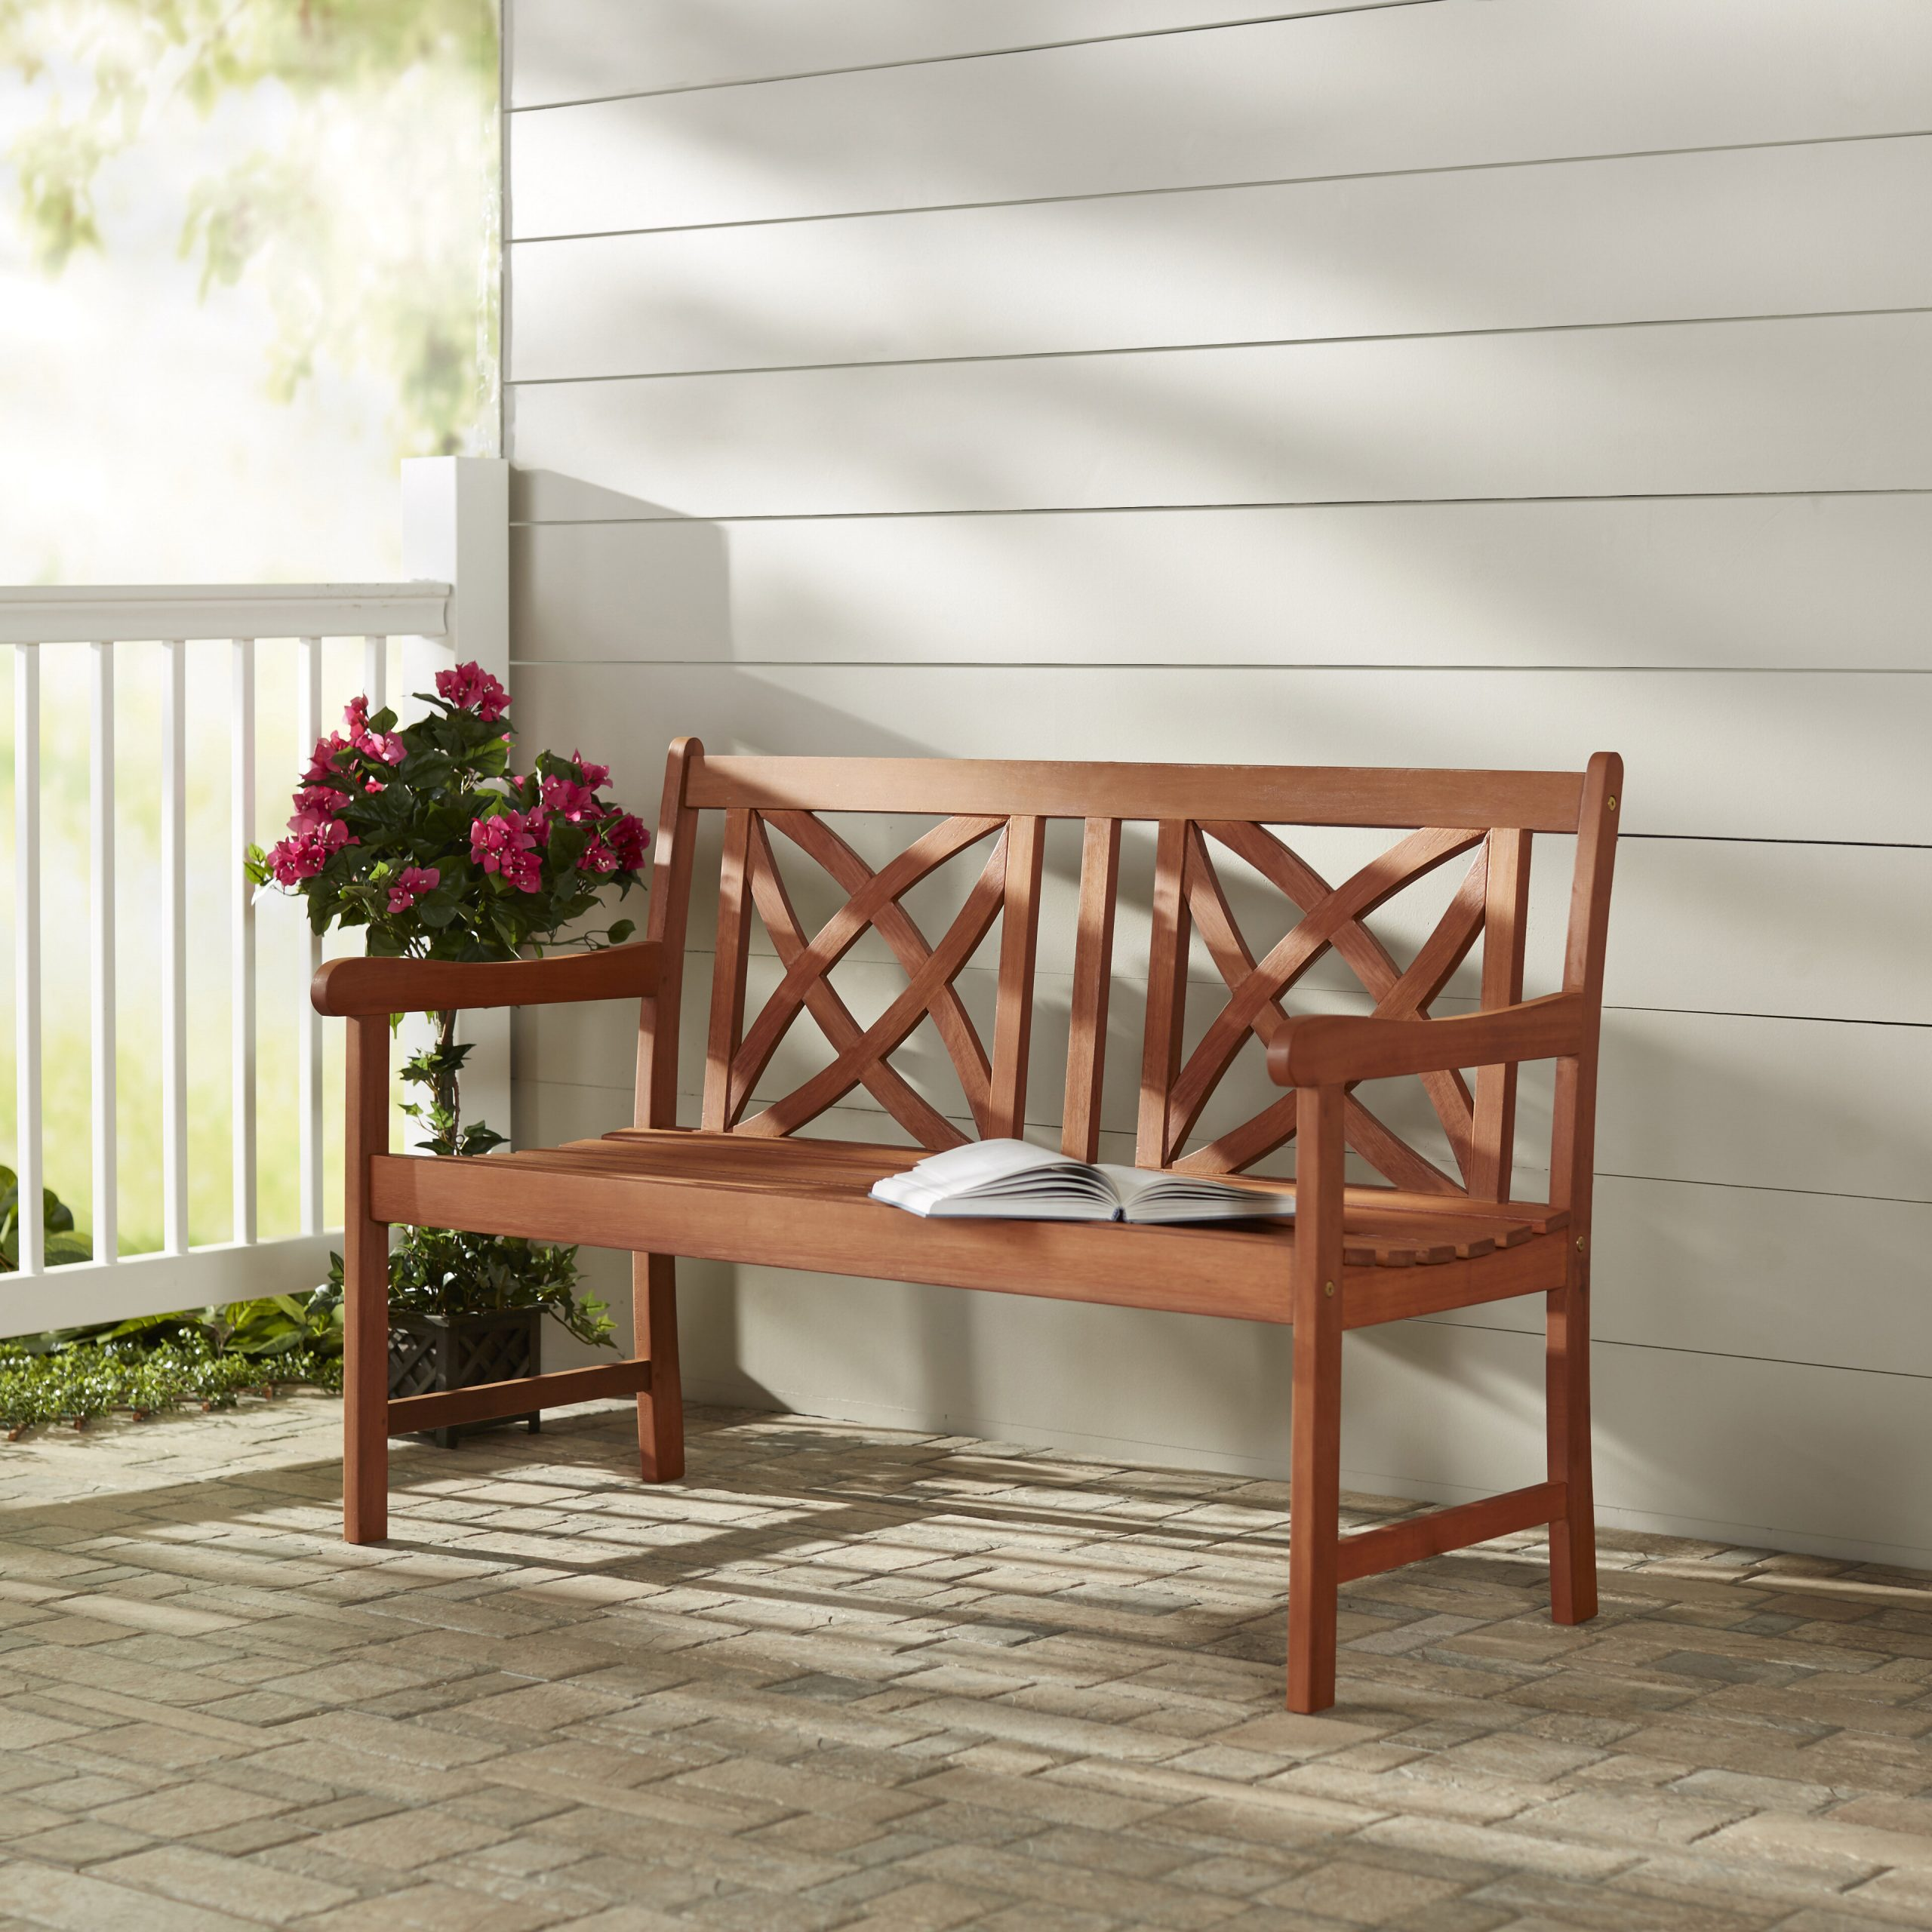 Maliyah Solid Wood Garden Bench In Guyapi Garden Benches (View 7 of 25)